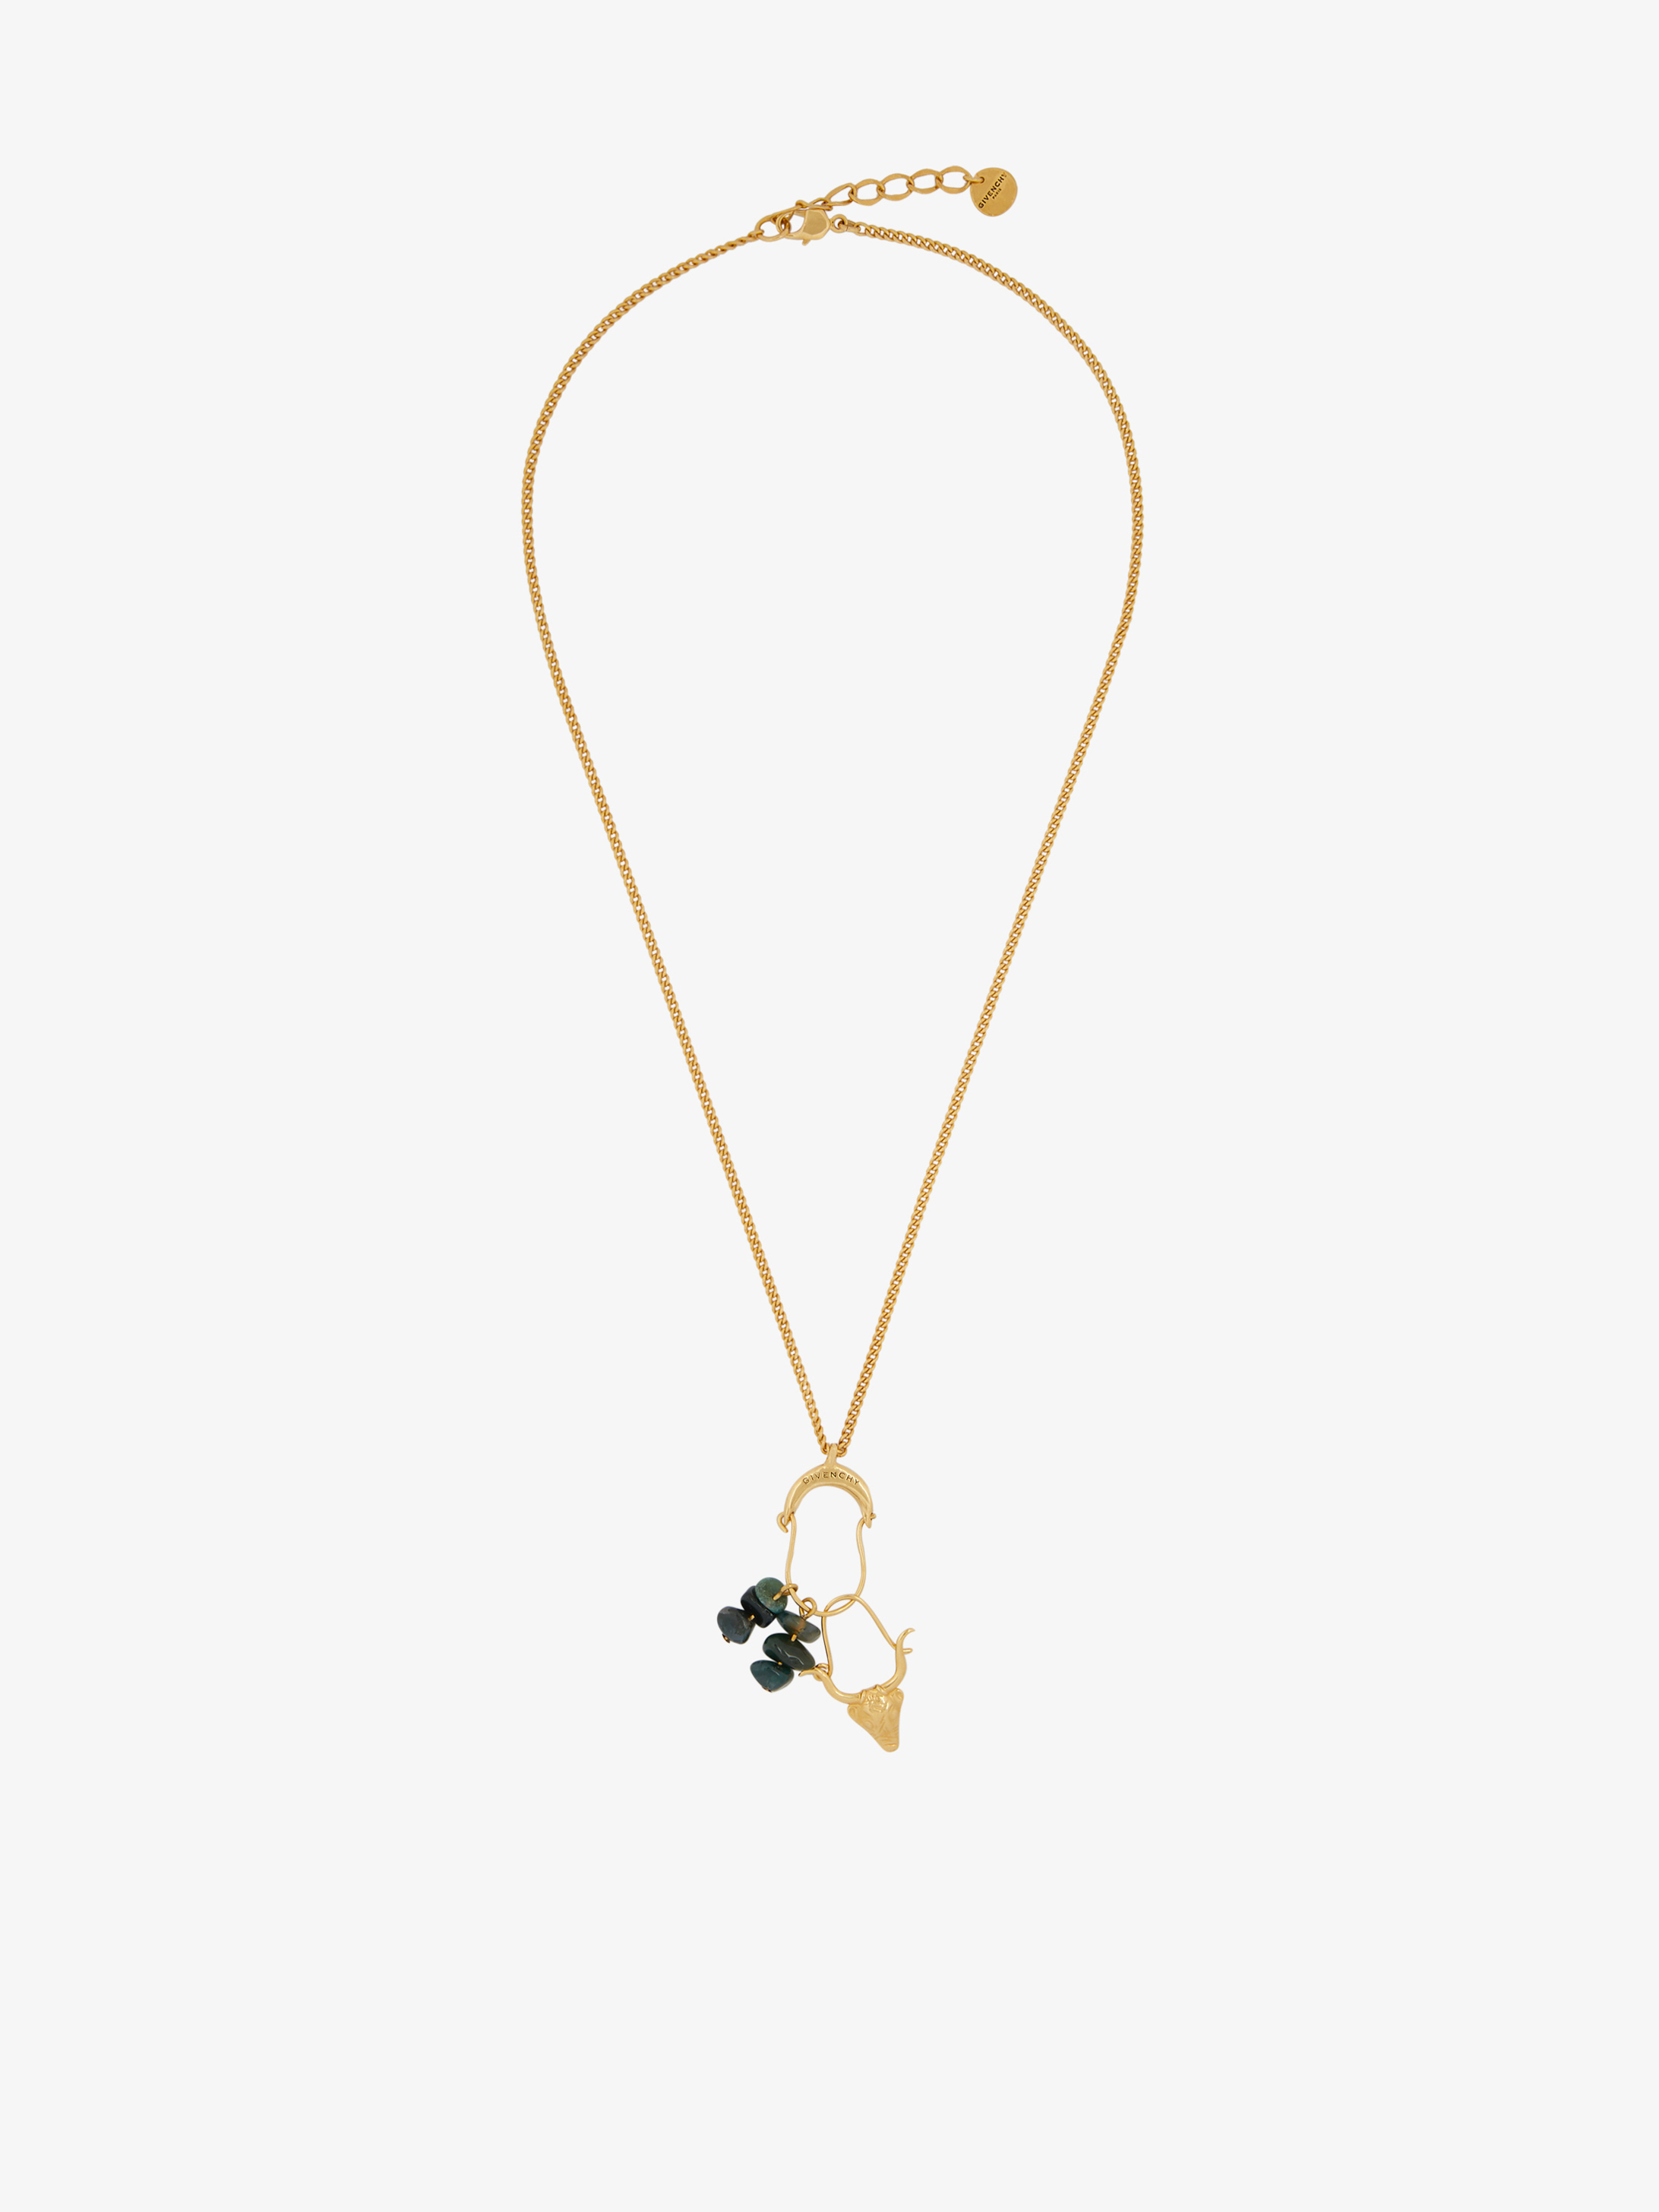 Necklace with Taurus charms